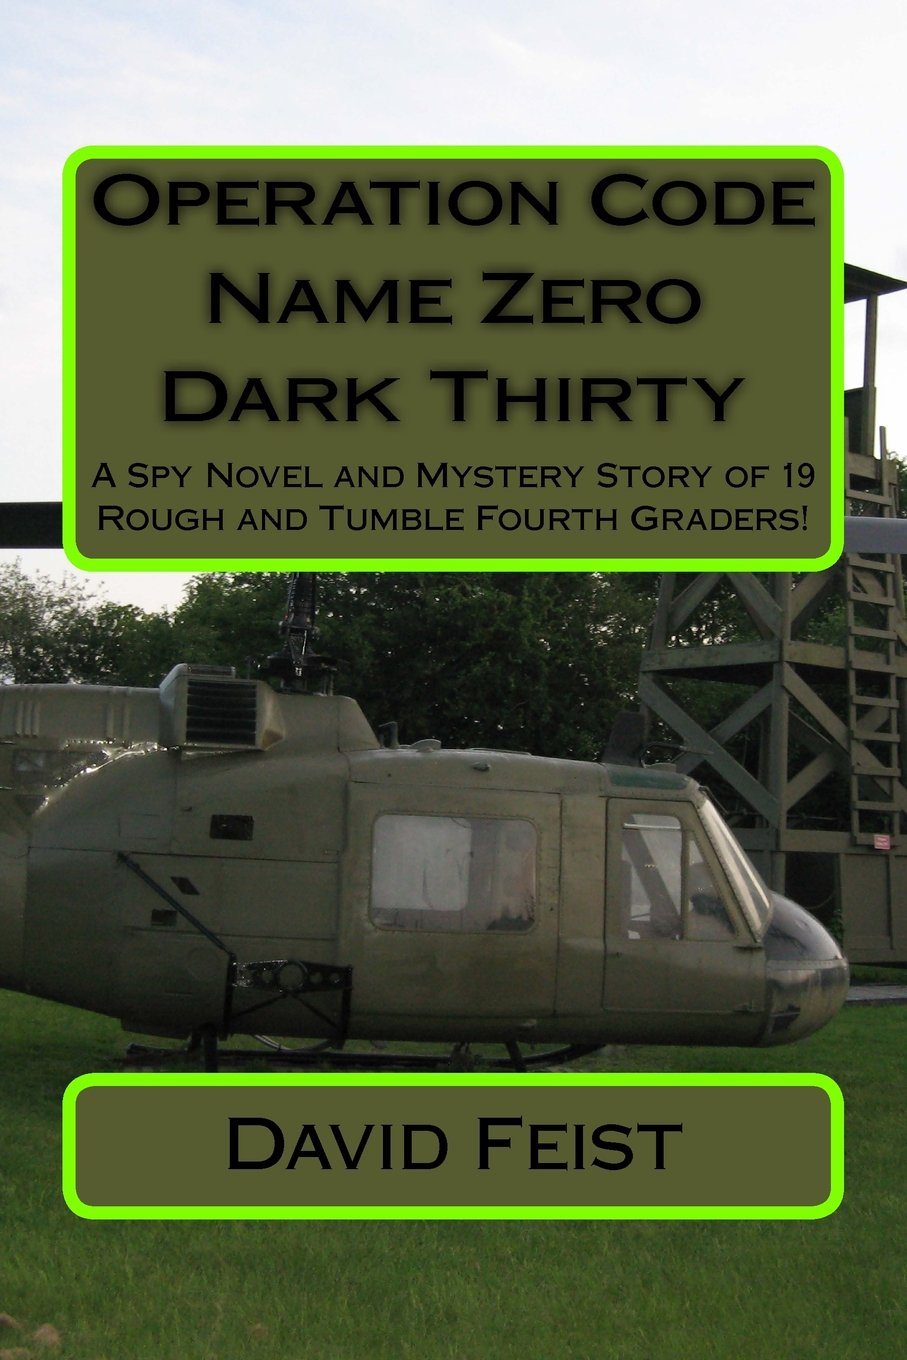 Download Operation Code Name Zero Dark Thirty: A Spy Novel and Mystery Story of 19 Rough and Tumble Fourth Graders! ebook